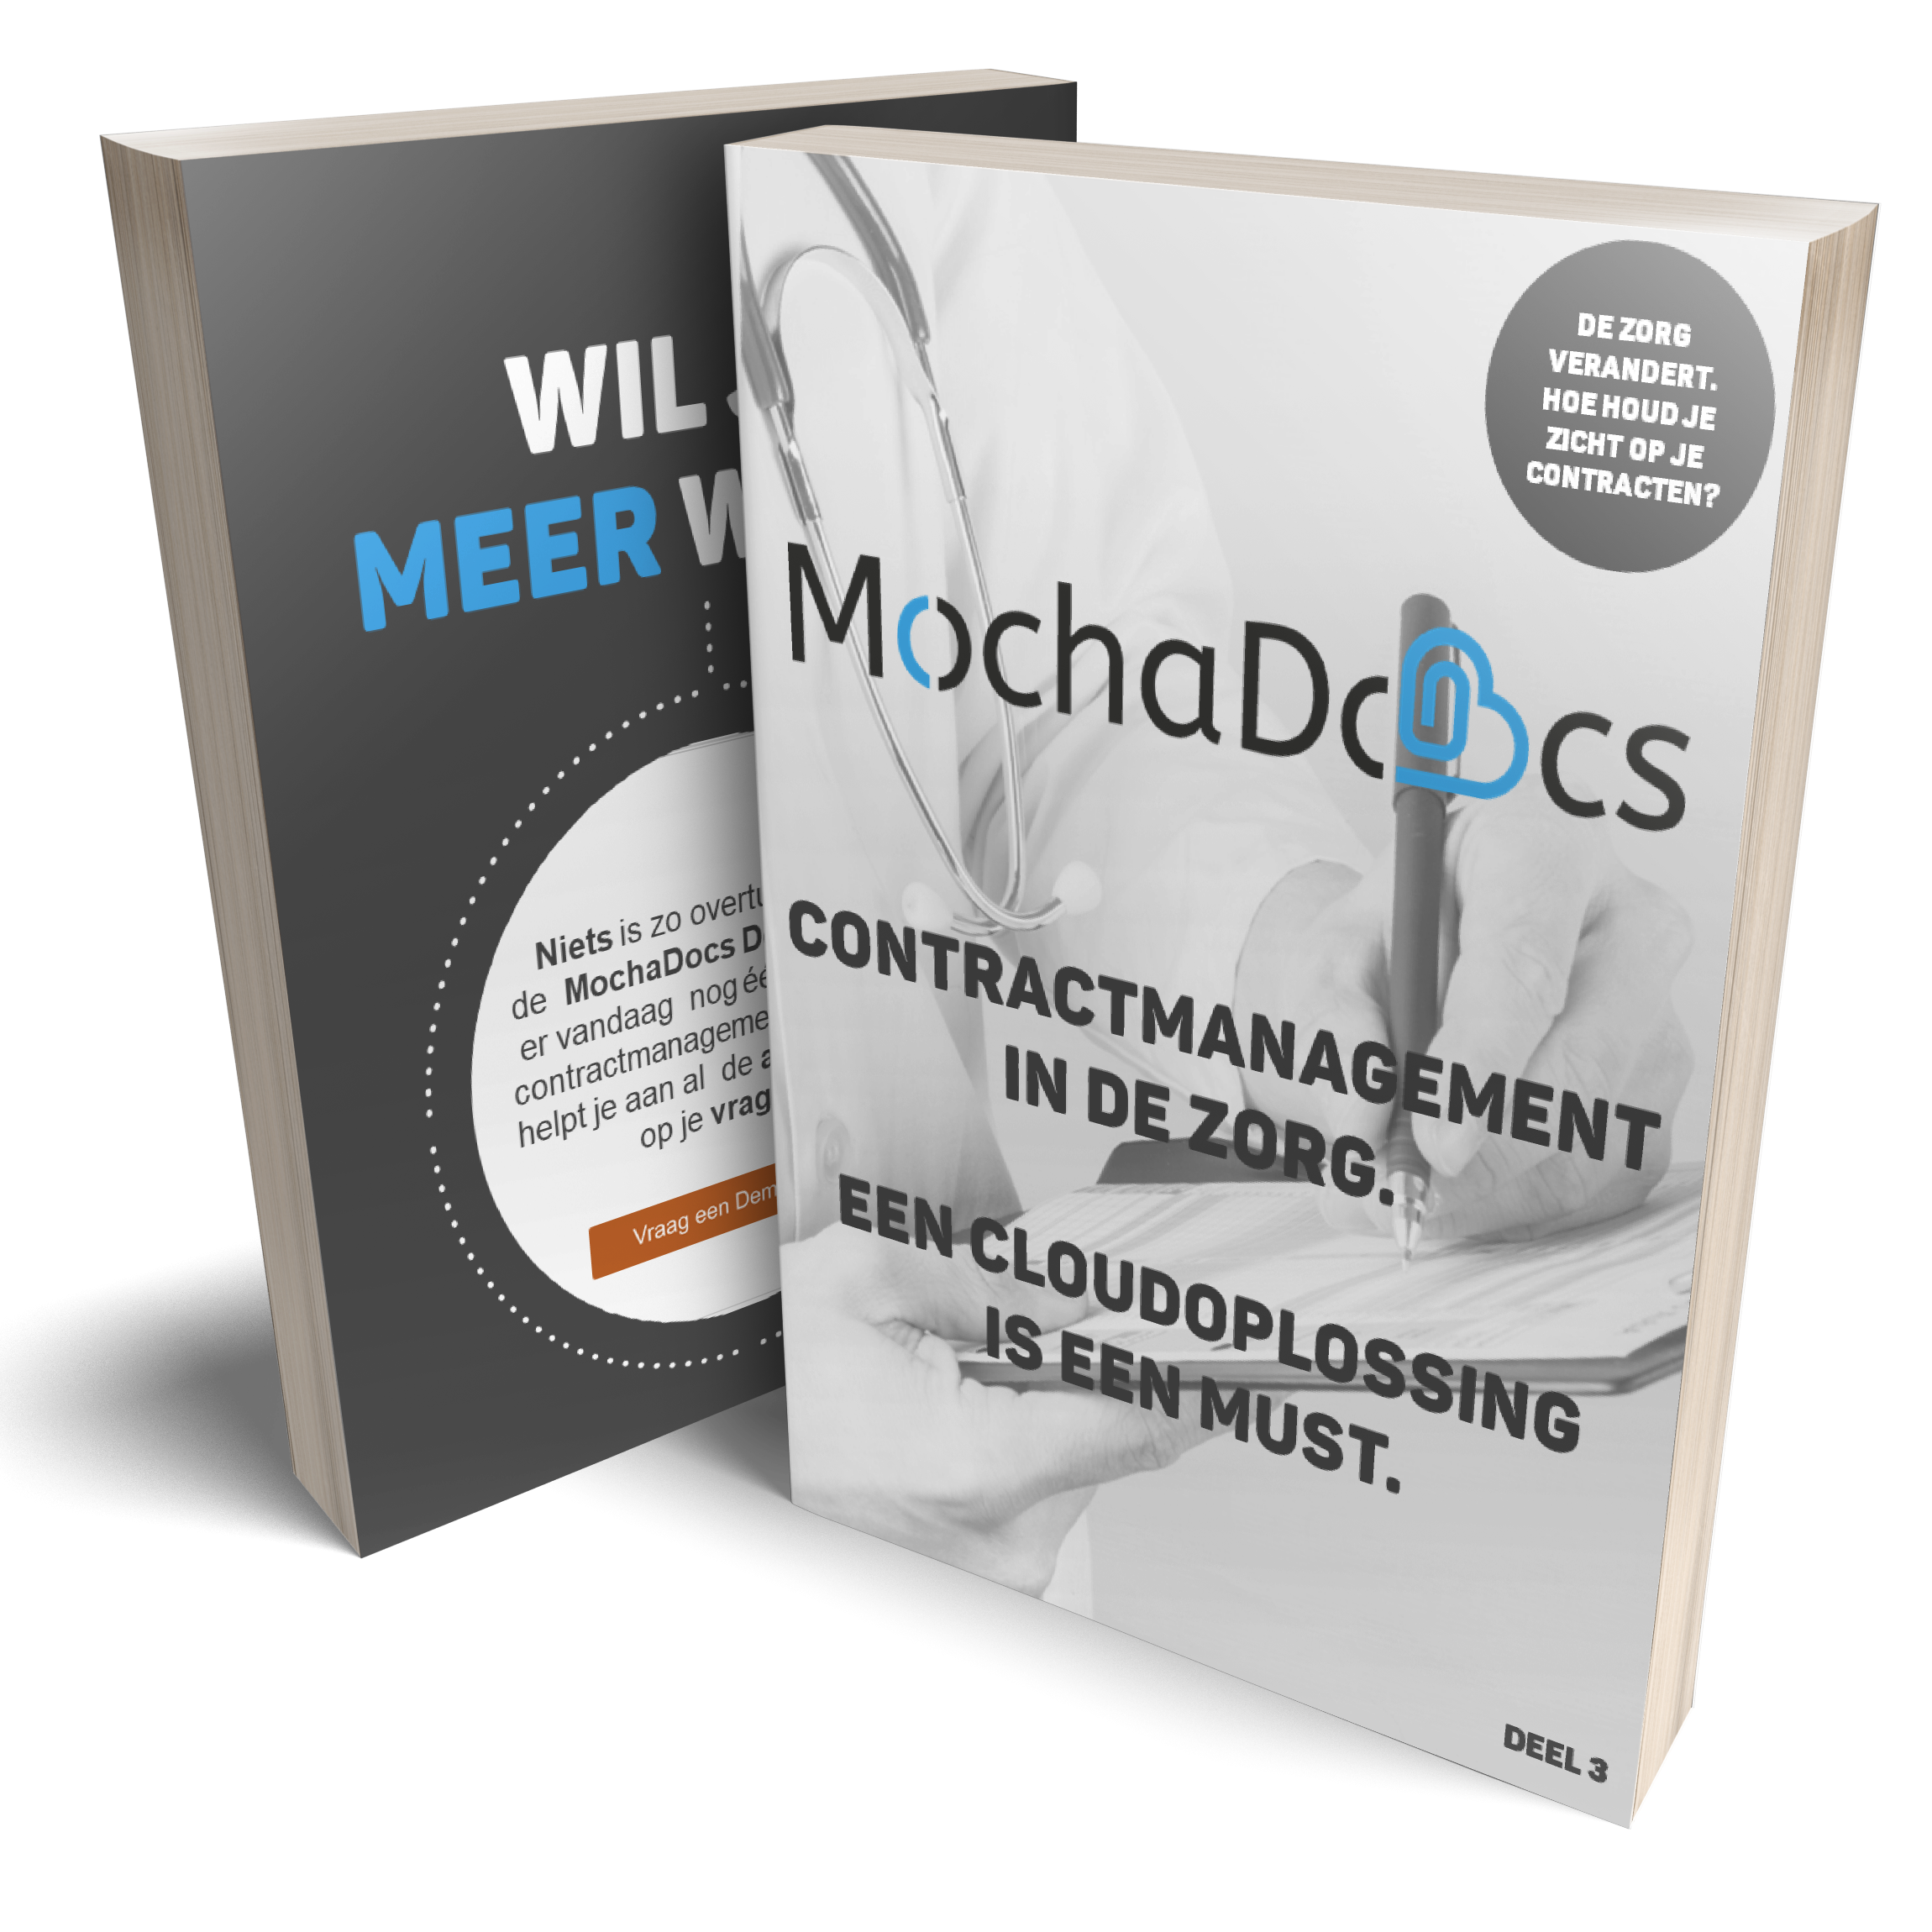 Contract Management in de Zorg - Cloudoplossing is een must